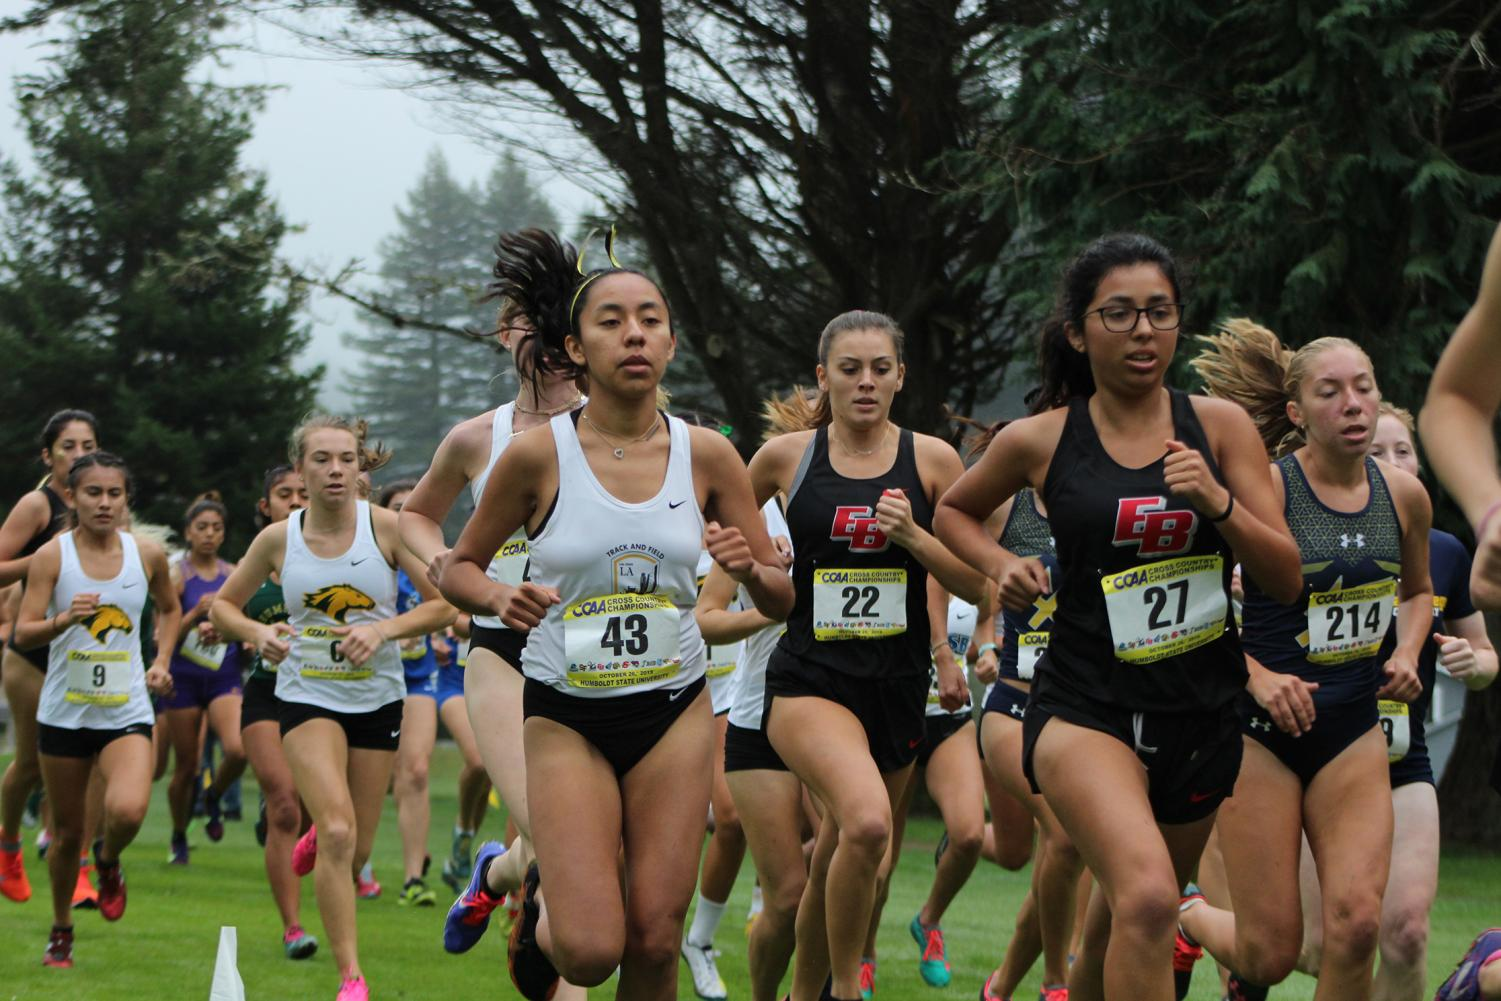 Cal State LA women's cross country placed 8th place overall this past Saturday with 236 points.